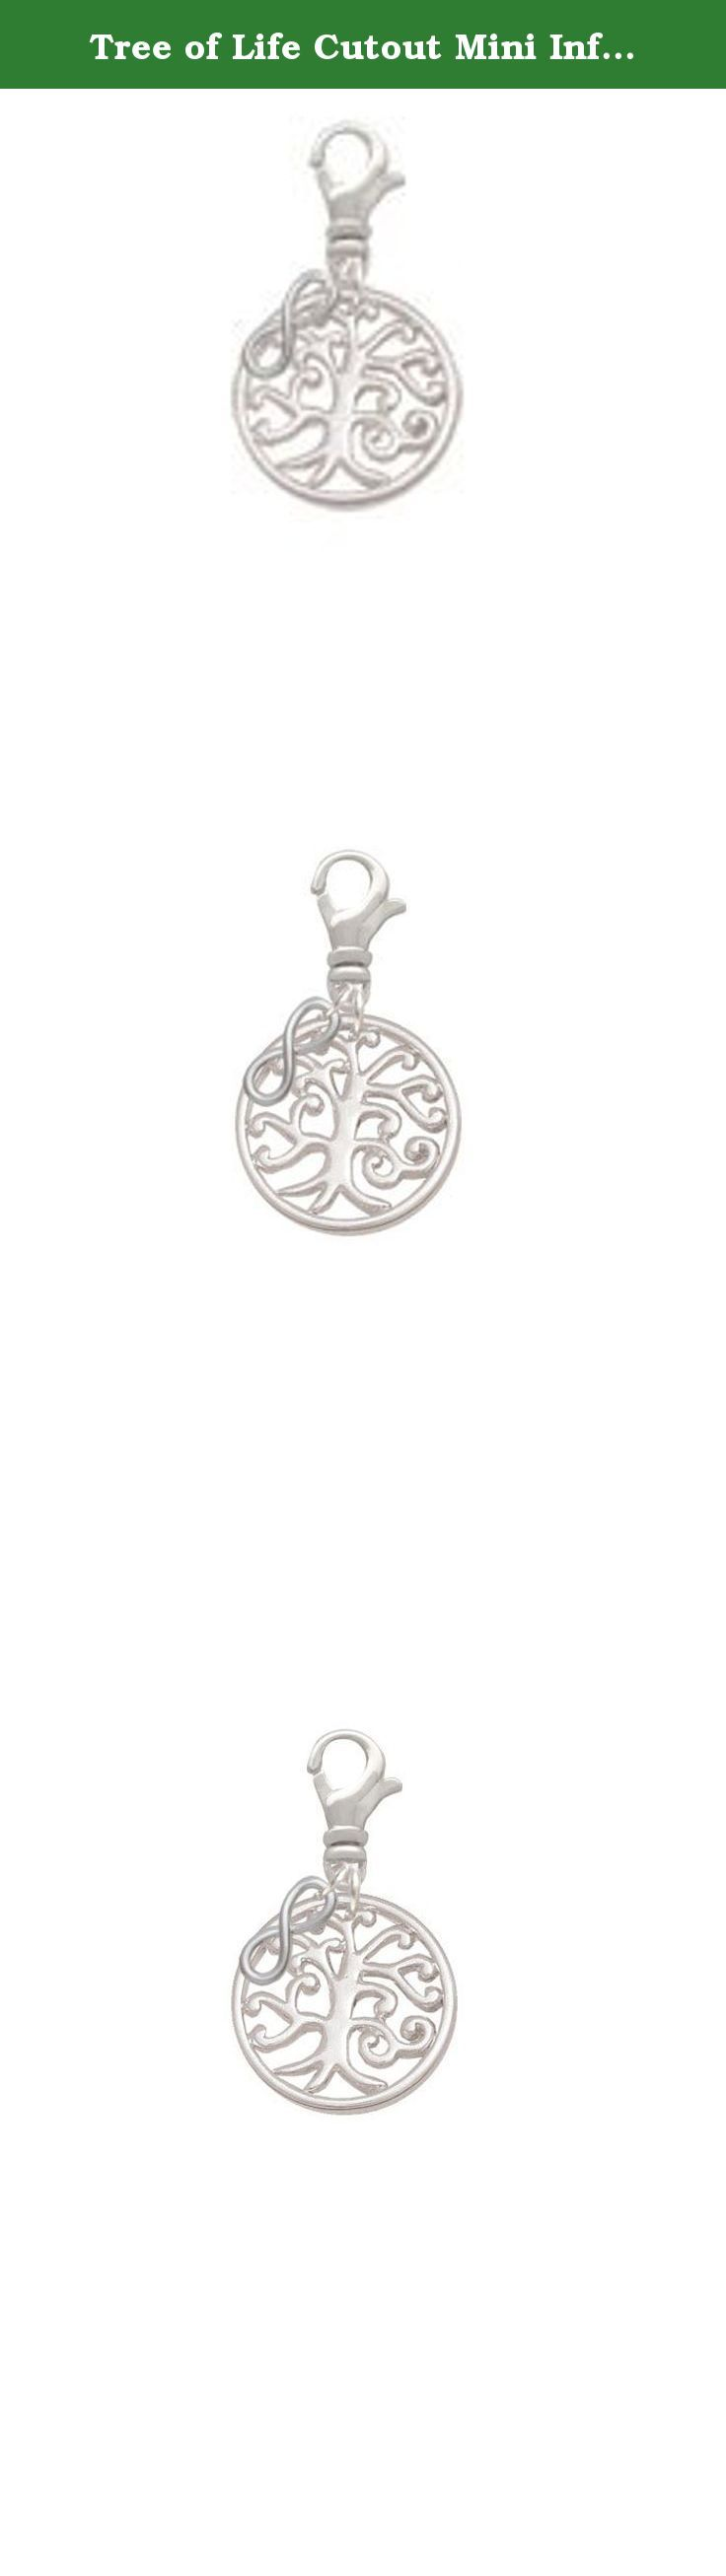 Tree of Life Cutout Mini Infinity Clip On Charm. Silver Tone Tree of Life Cutout Mini Infinity Clip On Charm. Silver Tone Tree of Life Cutout is approximately 0.72 x 0.72 x 0.9 inches (HxWxD) not including loop. Smooth on both sides. Mini Infinity Sign charm is approx. 0.41 x 0.17 x 0.11 inches (HxWxD). Silver Tone Swivel Lobster Claw Clasp is approx. 13 x 7 mm. Clip On Charms may be added to your favorite jewelry from bracelets to necklaces. PLEASE NOTE: Our products are lead safe, but…